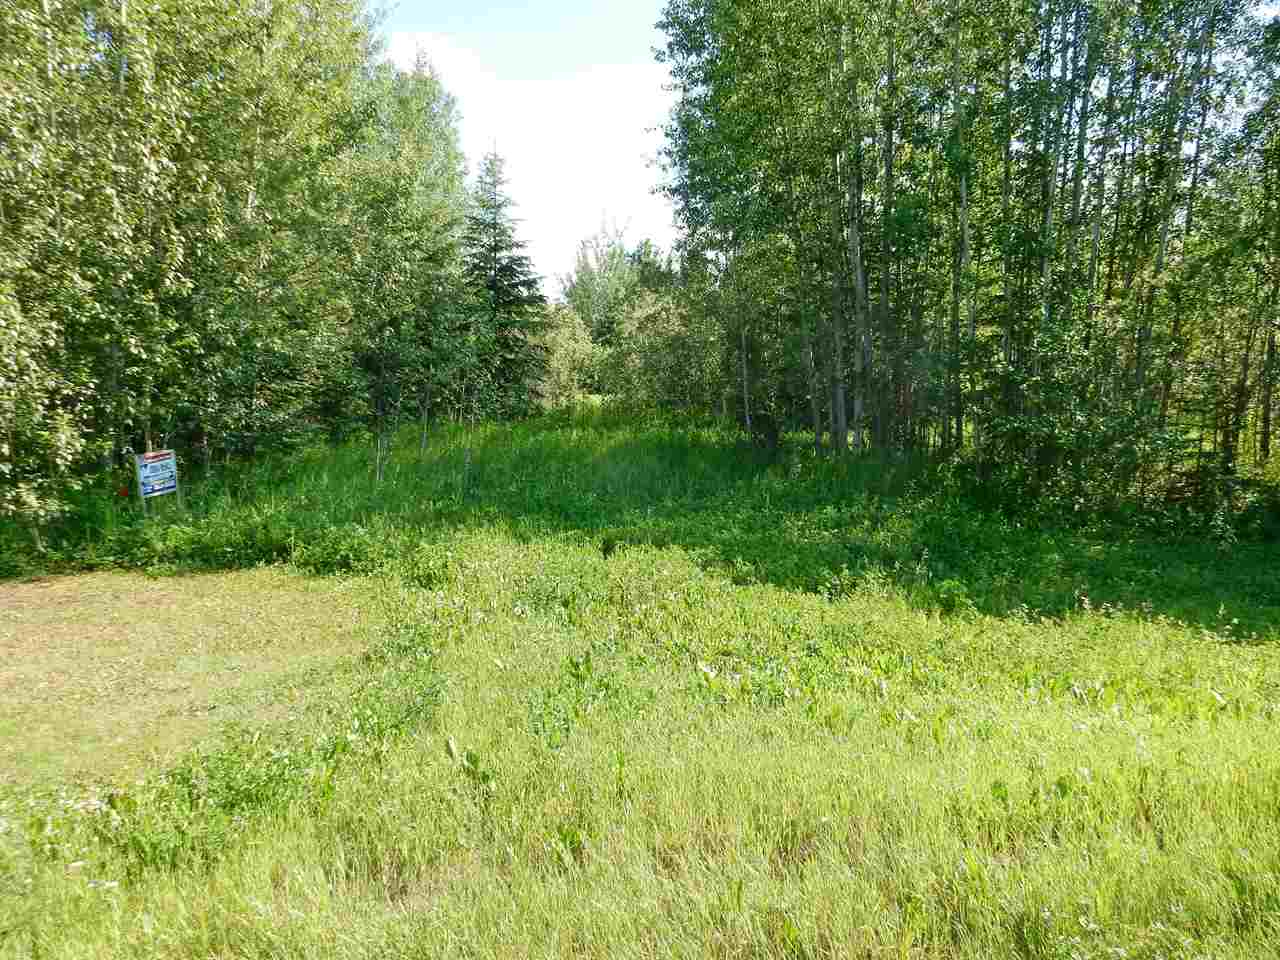 Photo 4: LOT 18 Pinebrook Estates: Rural Thorhild County Rural Land/Vacant Lot for sale : MLS® # E4010007